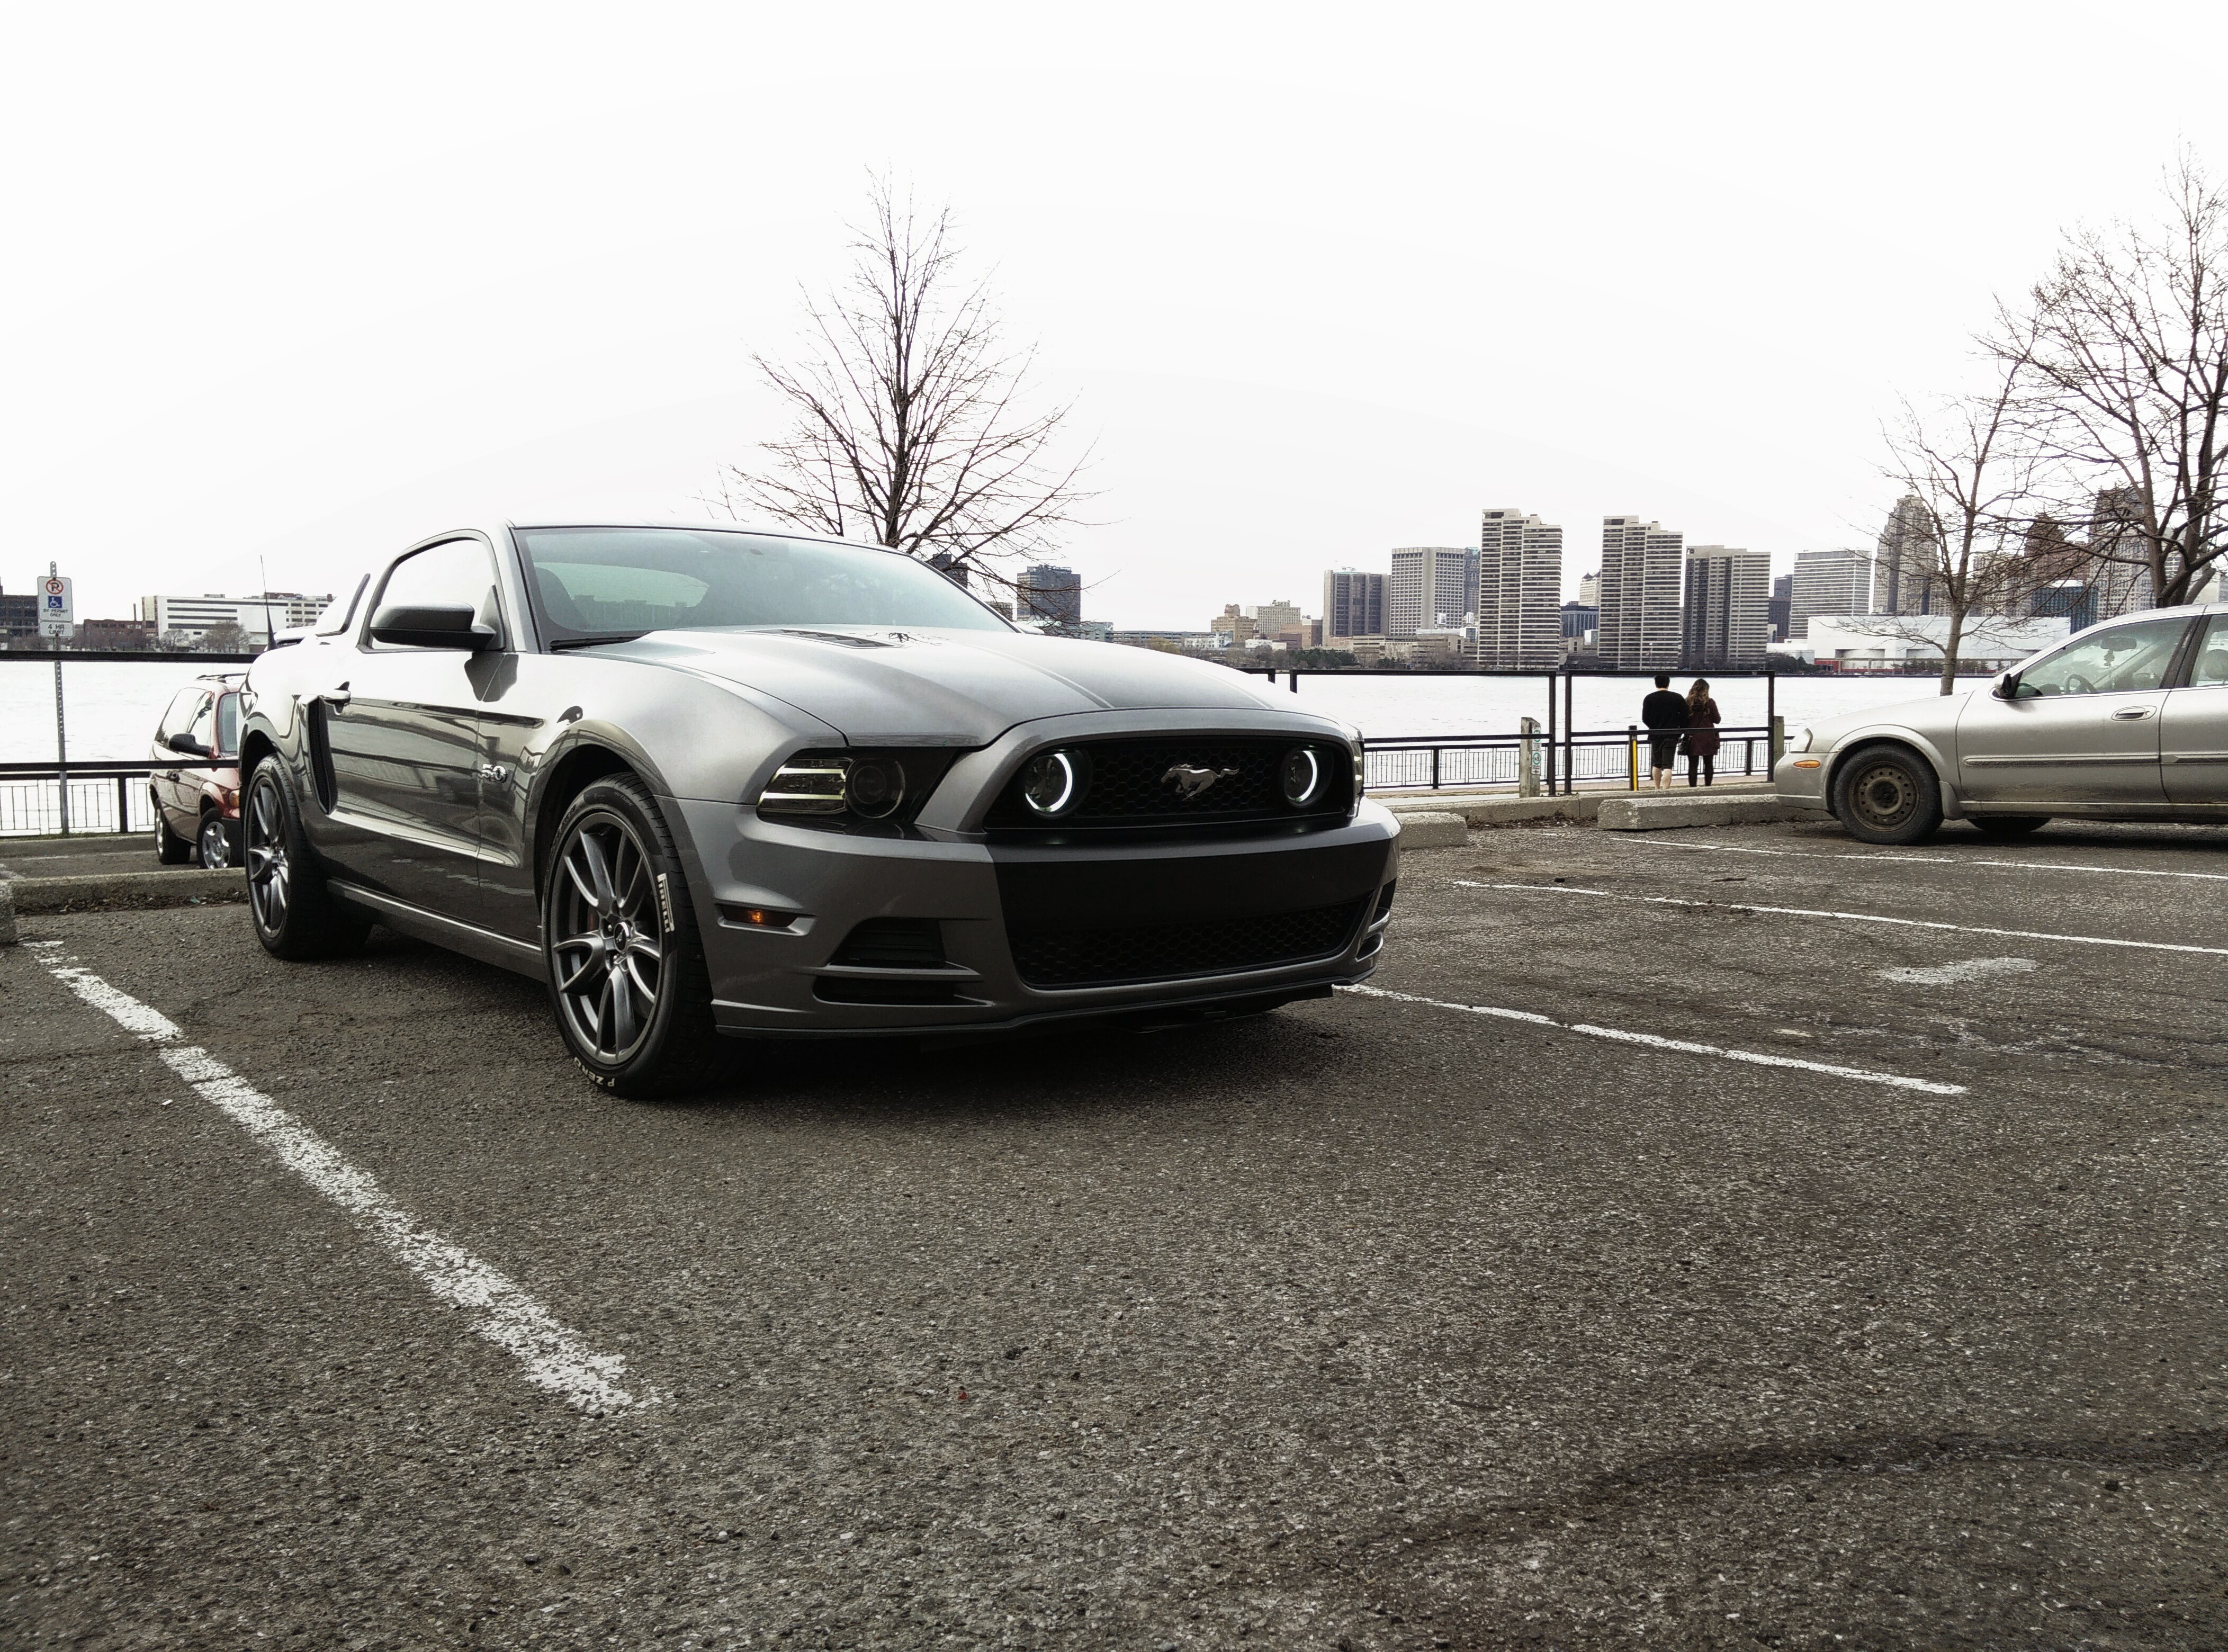 2014 Mustang Gt Track Pack >> 2014 Ford Mustang Gt Track Pack